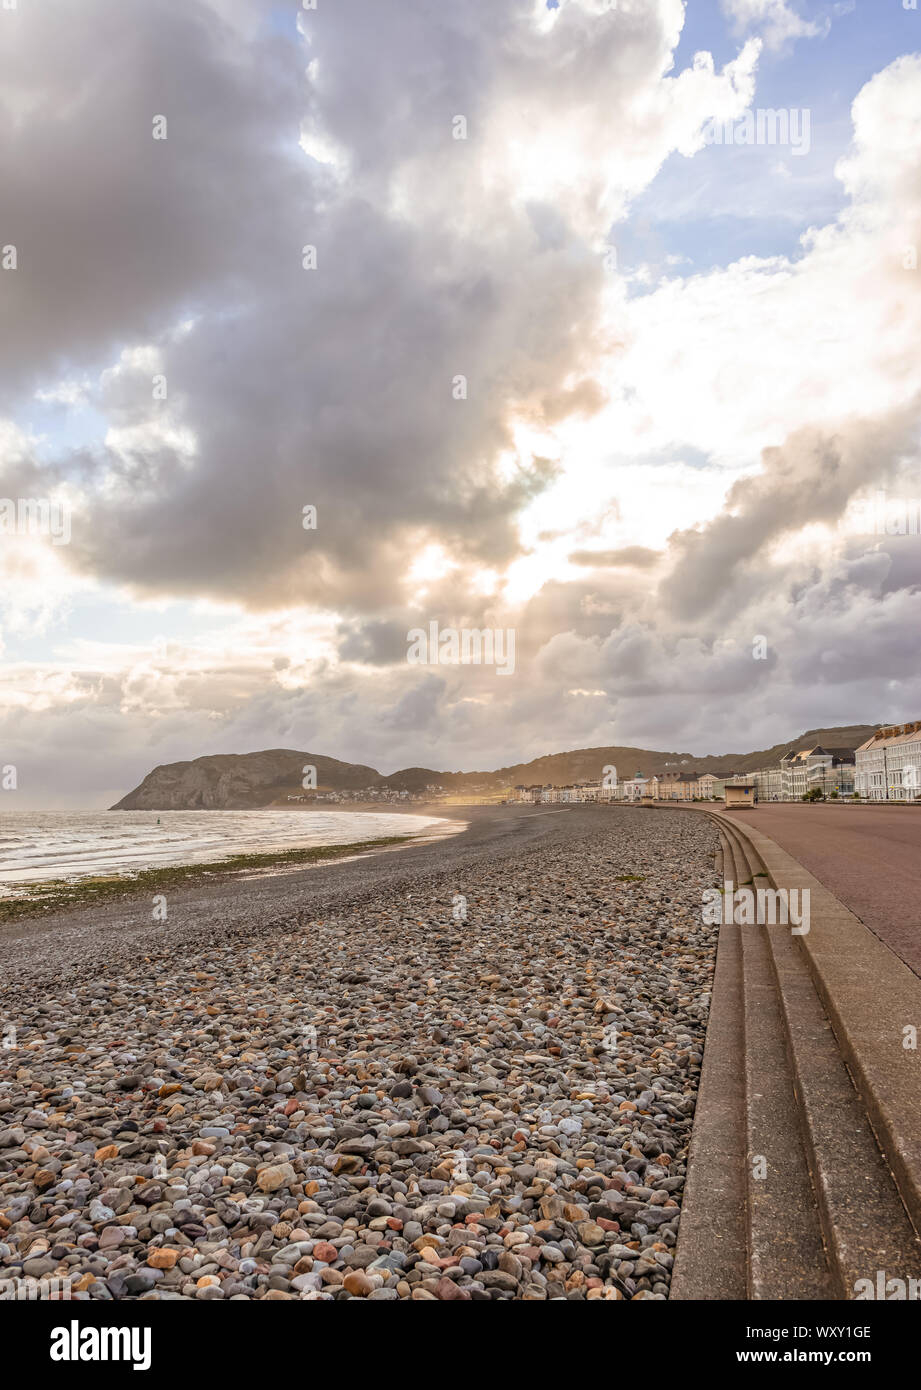 A view of Llandudno's curving shoreline with dramatic clouds.  The Little Orme headland is in the distance and sun rays illuminate a field. Stock Photo